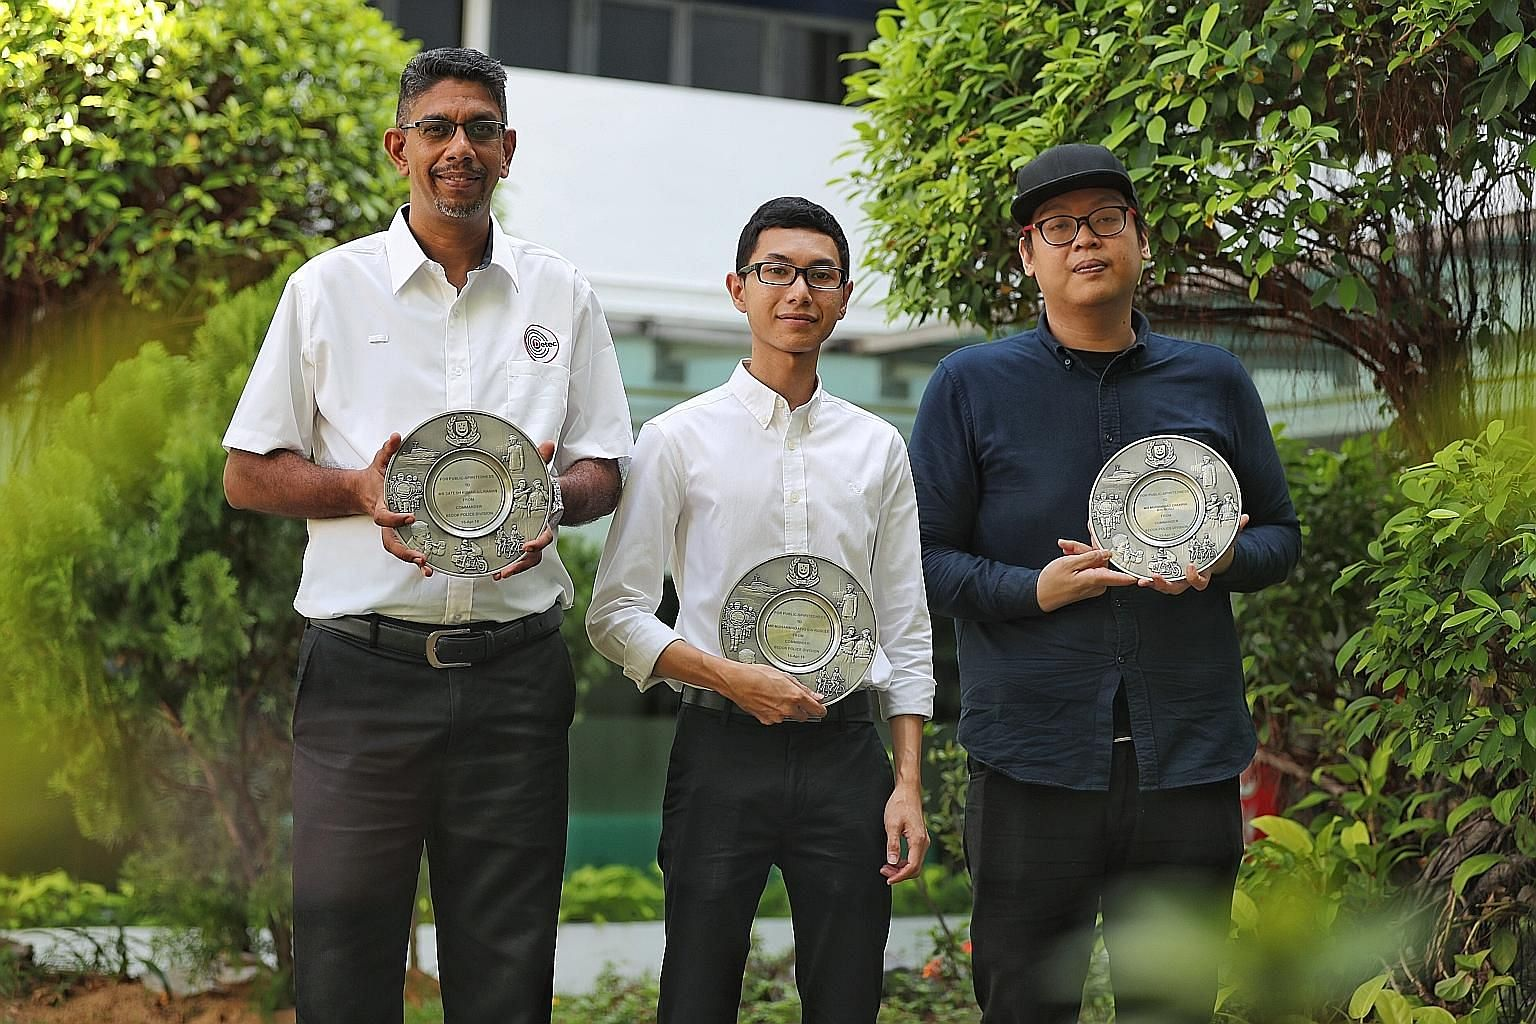 (From left) Mr Satesh Kumar A/L Raman, Mr Muhammad Afiq Roslee and Mr Muhammad Zakaria Rosli with their Public Spiritedness Awards at Bedok Police Division headquarters yesterday.